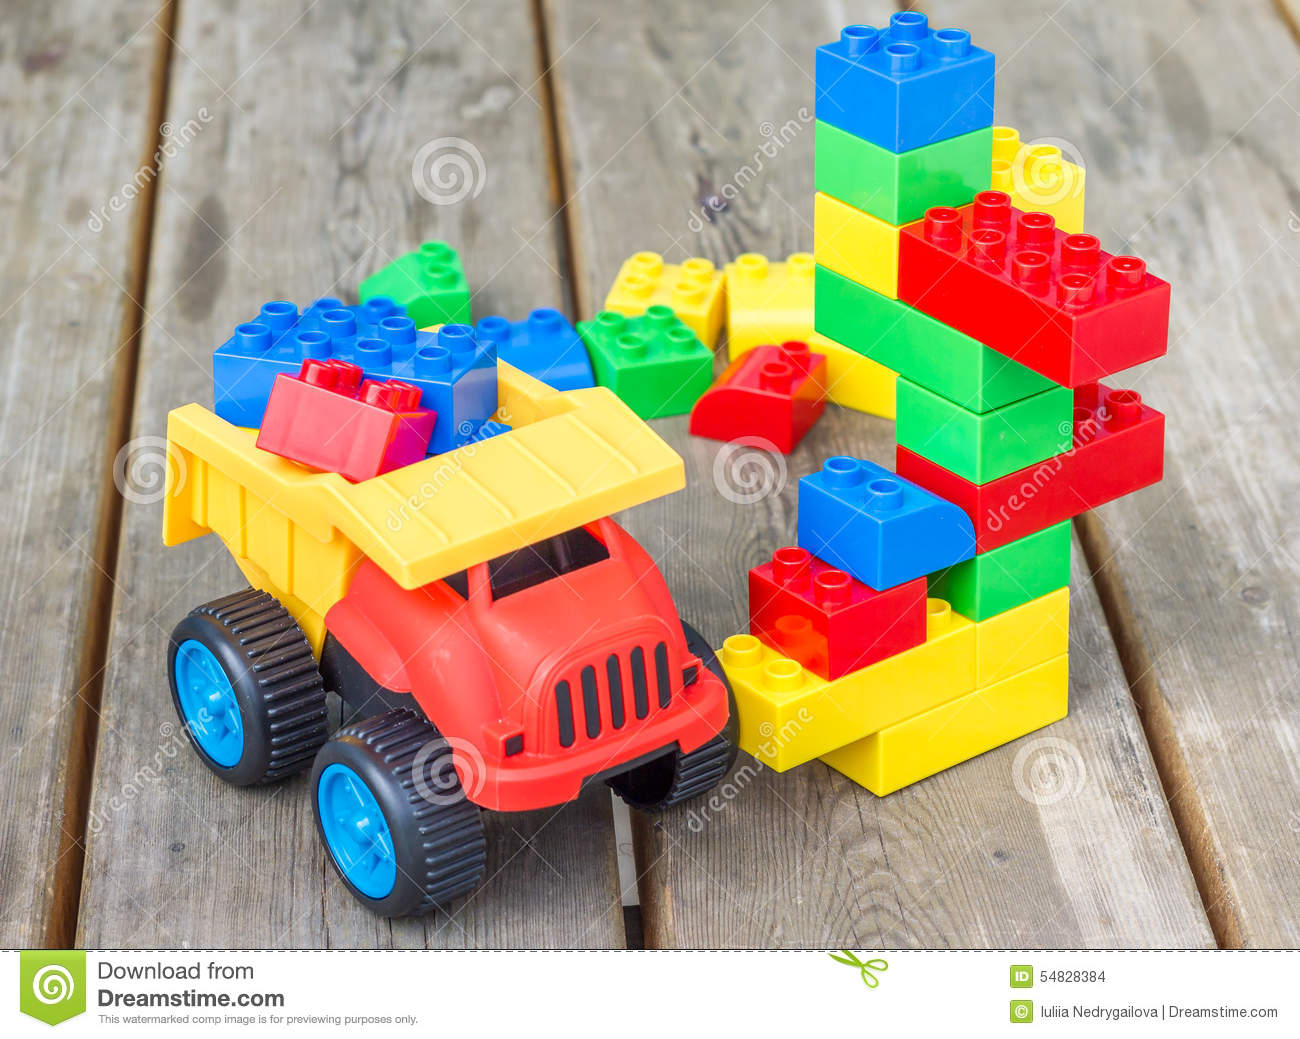 Plastic building blocks and toy truck